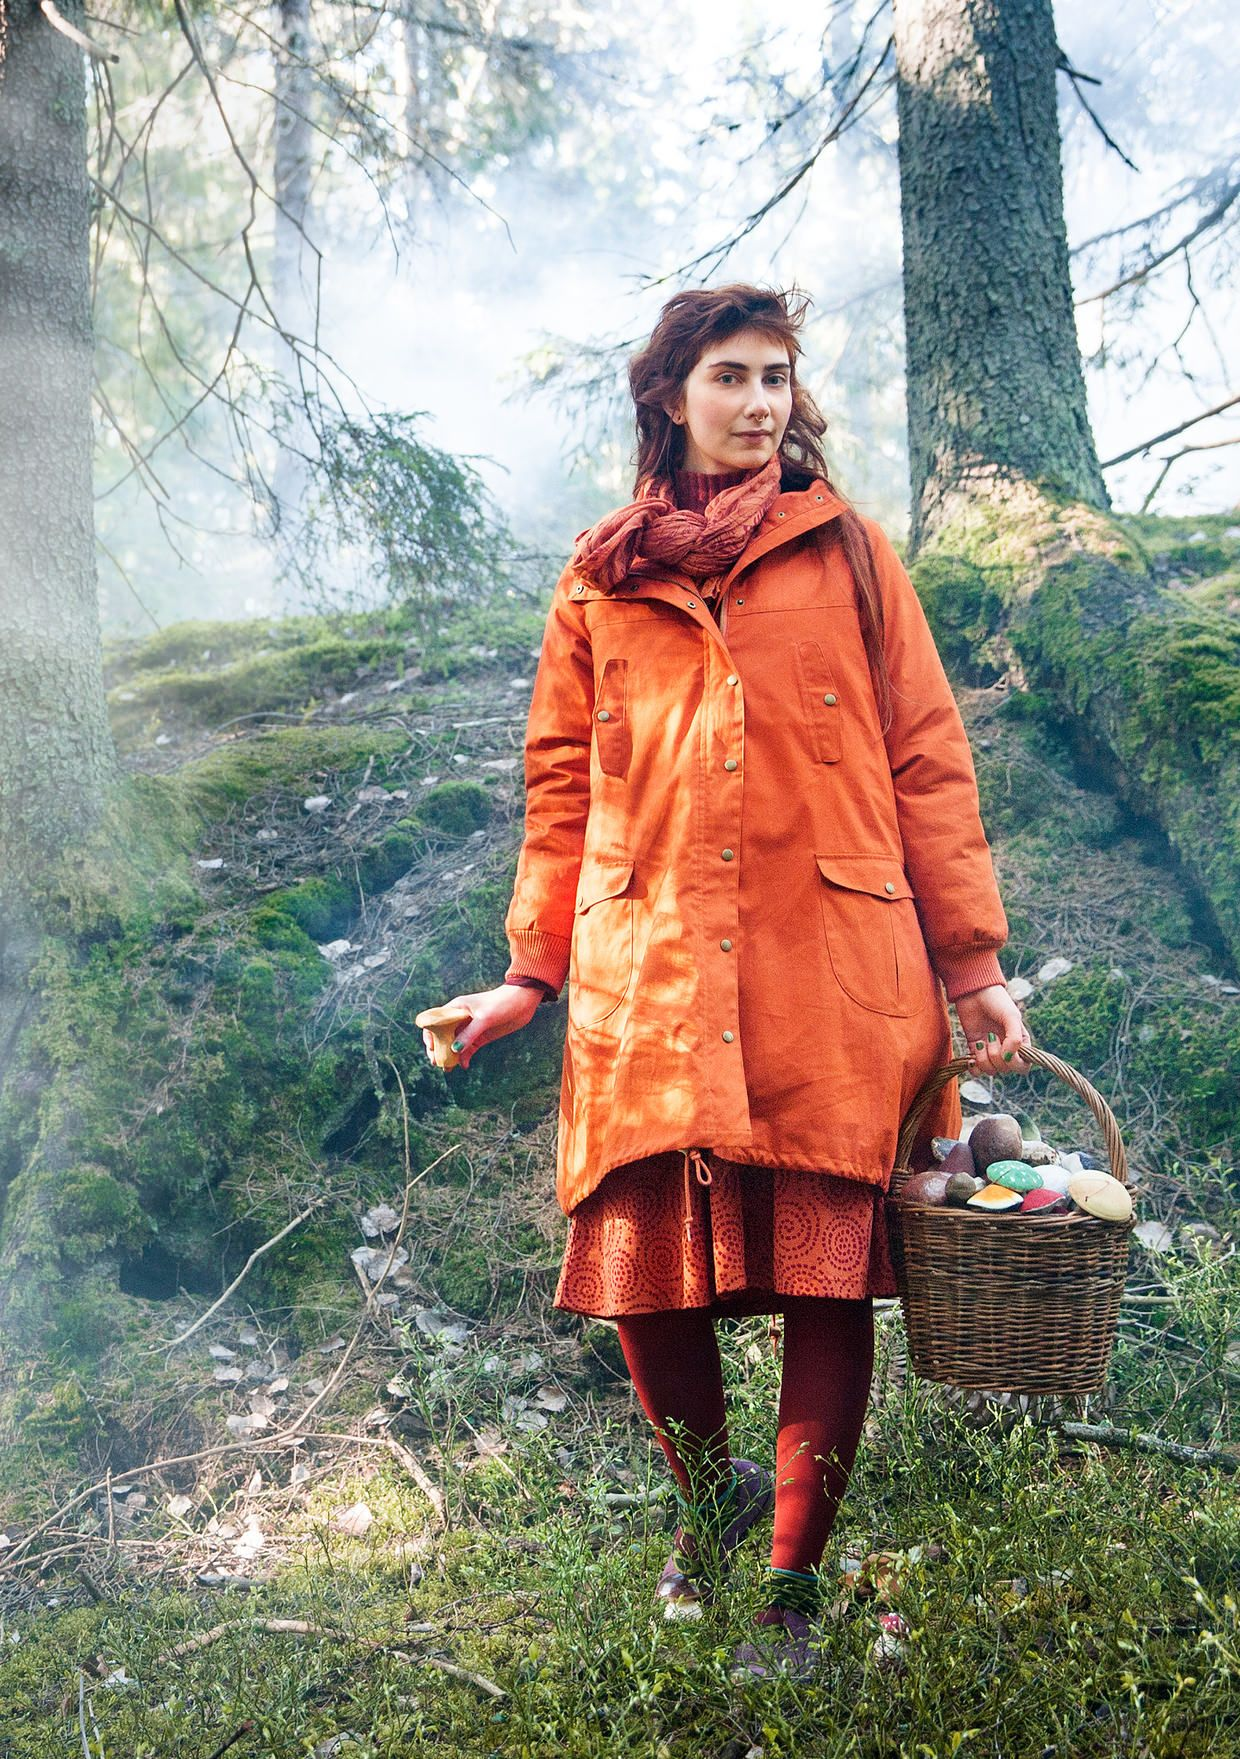 5bc4afc5df80 Parka in cotton – Lost in the ancient forest – GUDRUN SJÖDÉN – Webshop,  mail order and boutiques | Colorful clothes and home textiles in natural  materials.